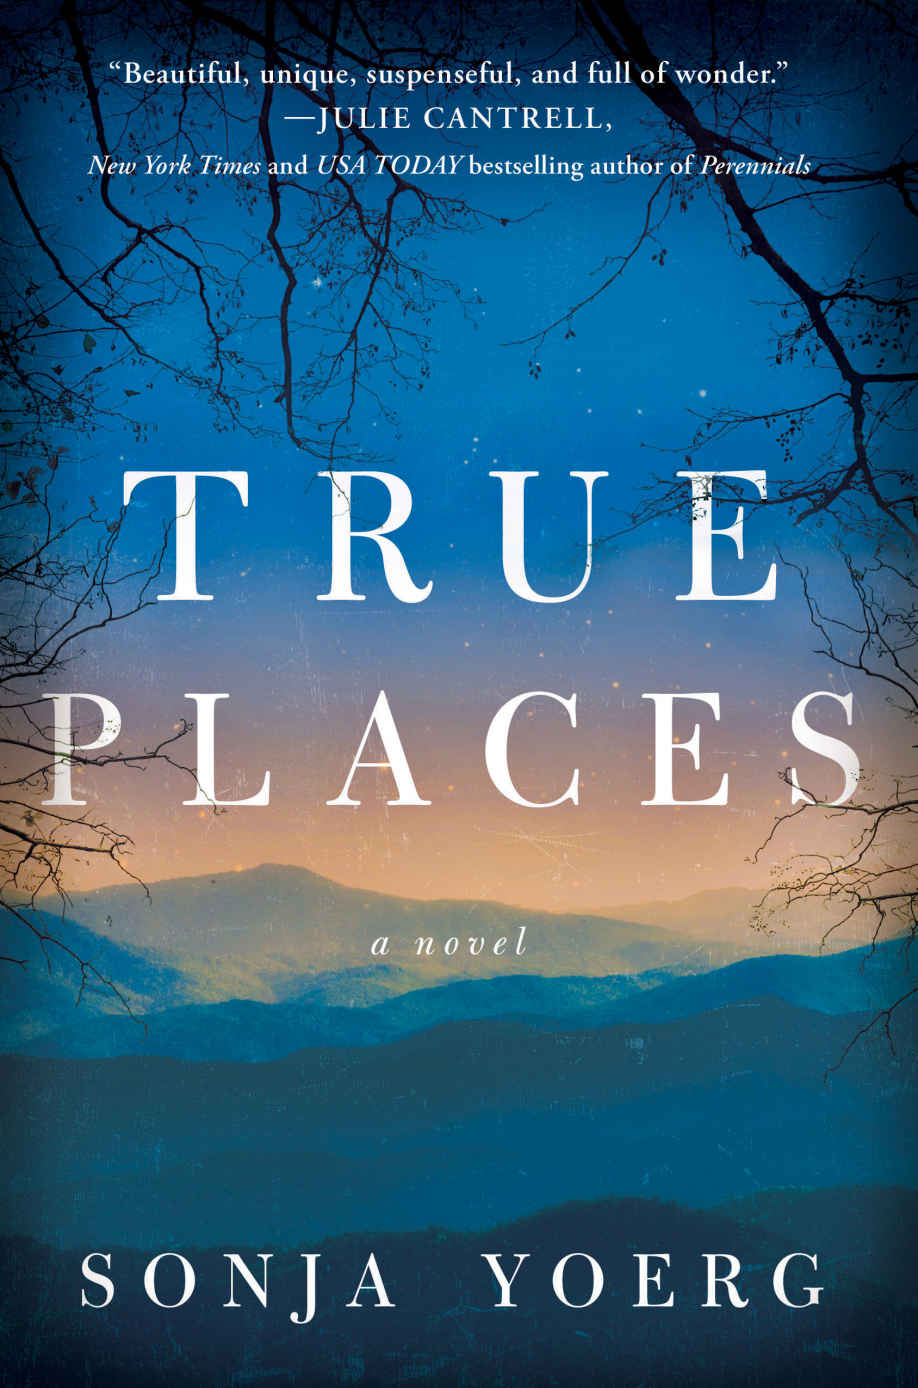 True Places: A Novel - Sonya Yoerg [kindle] [mobi]